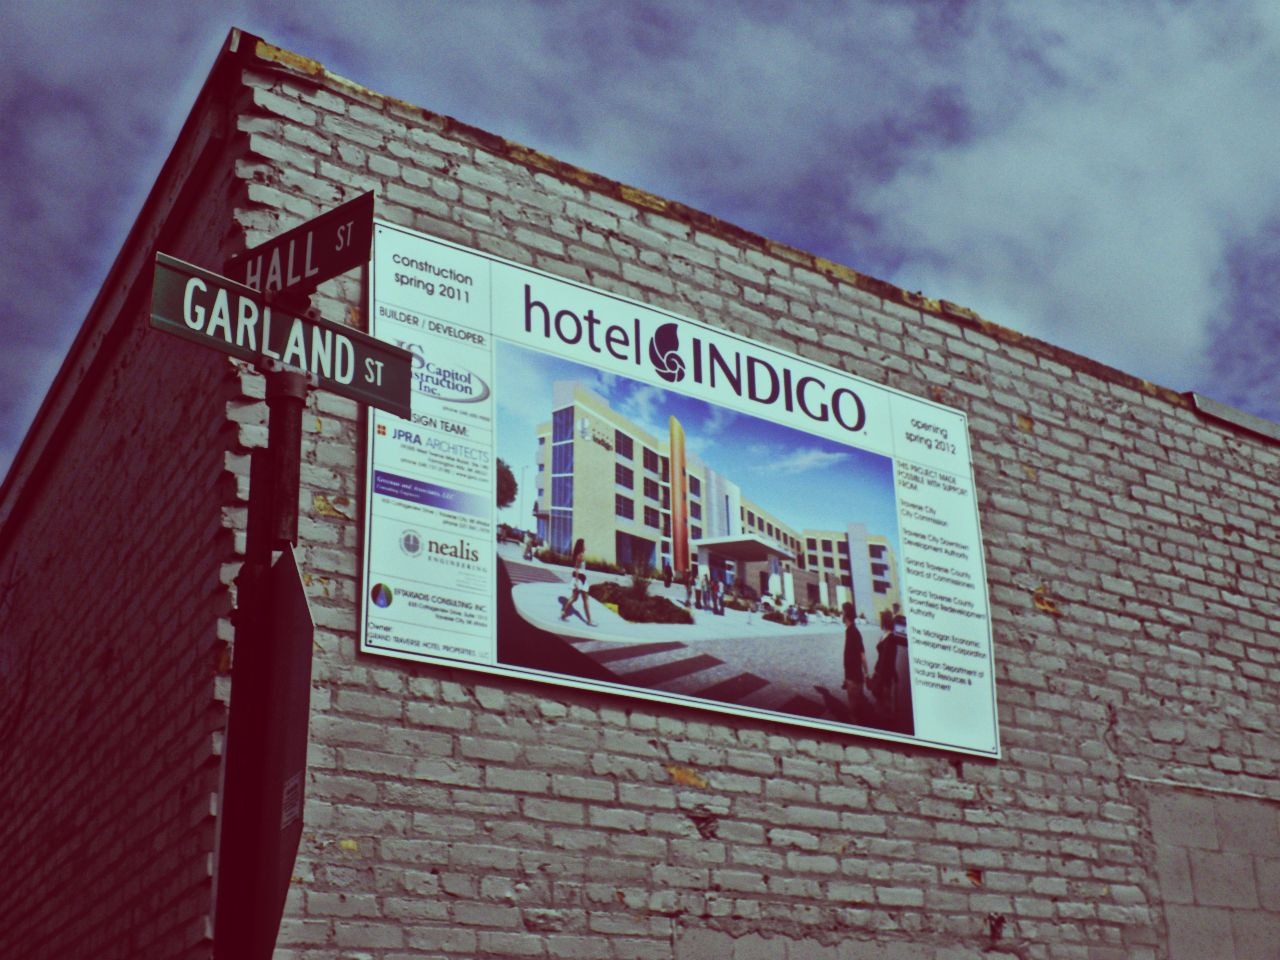 Future Hotel Indigo Sign on Building Wall